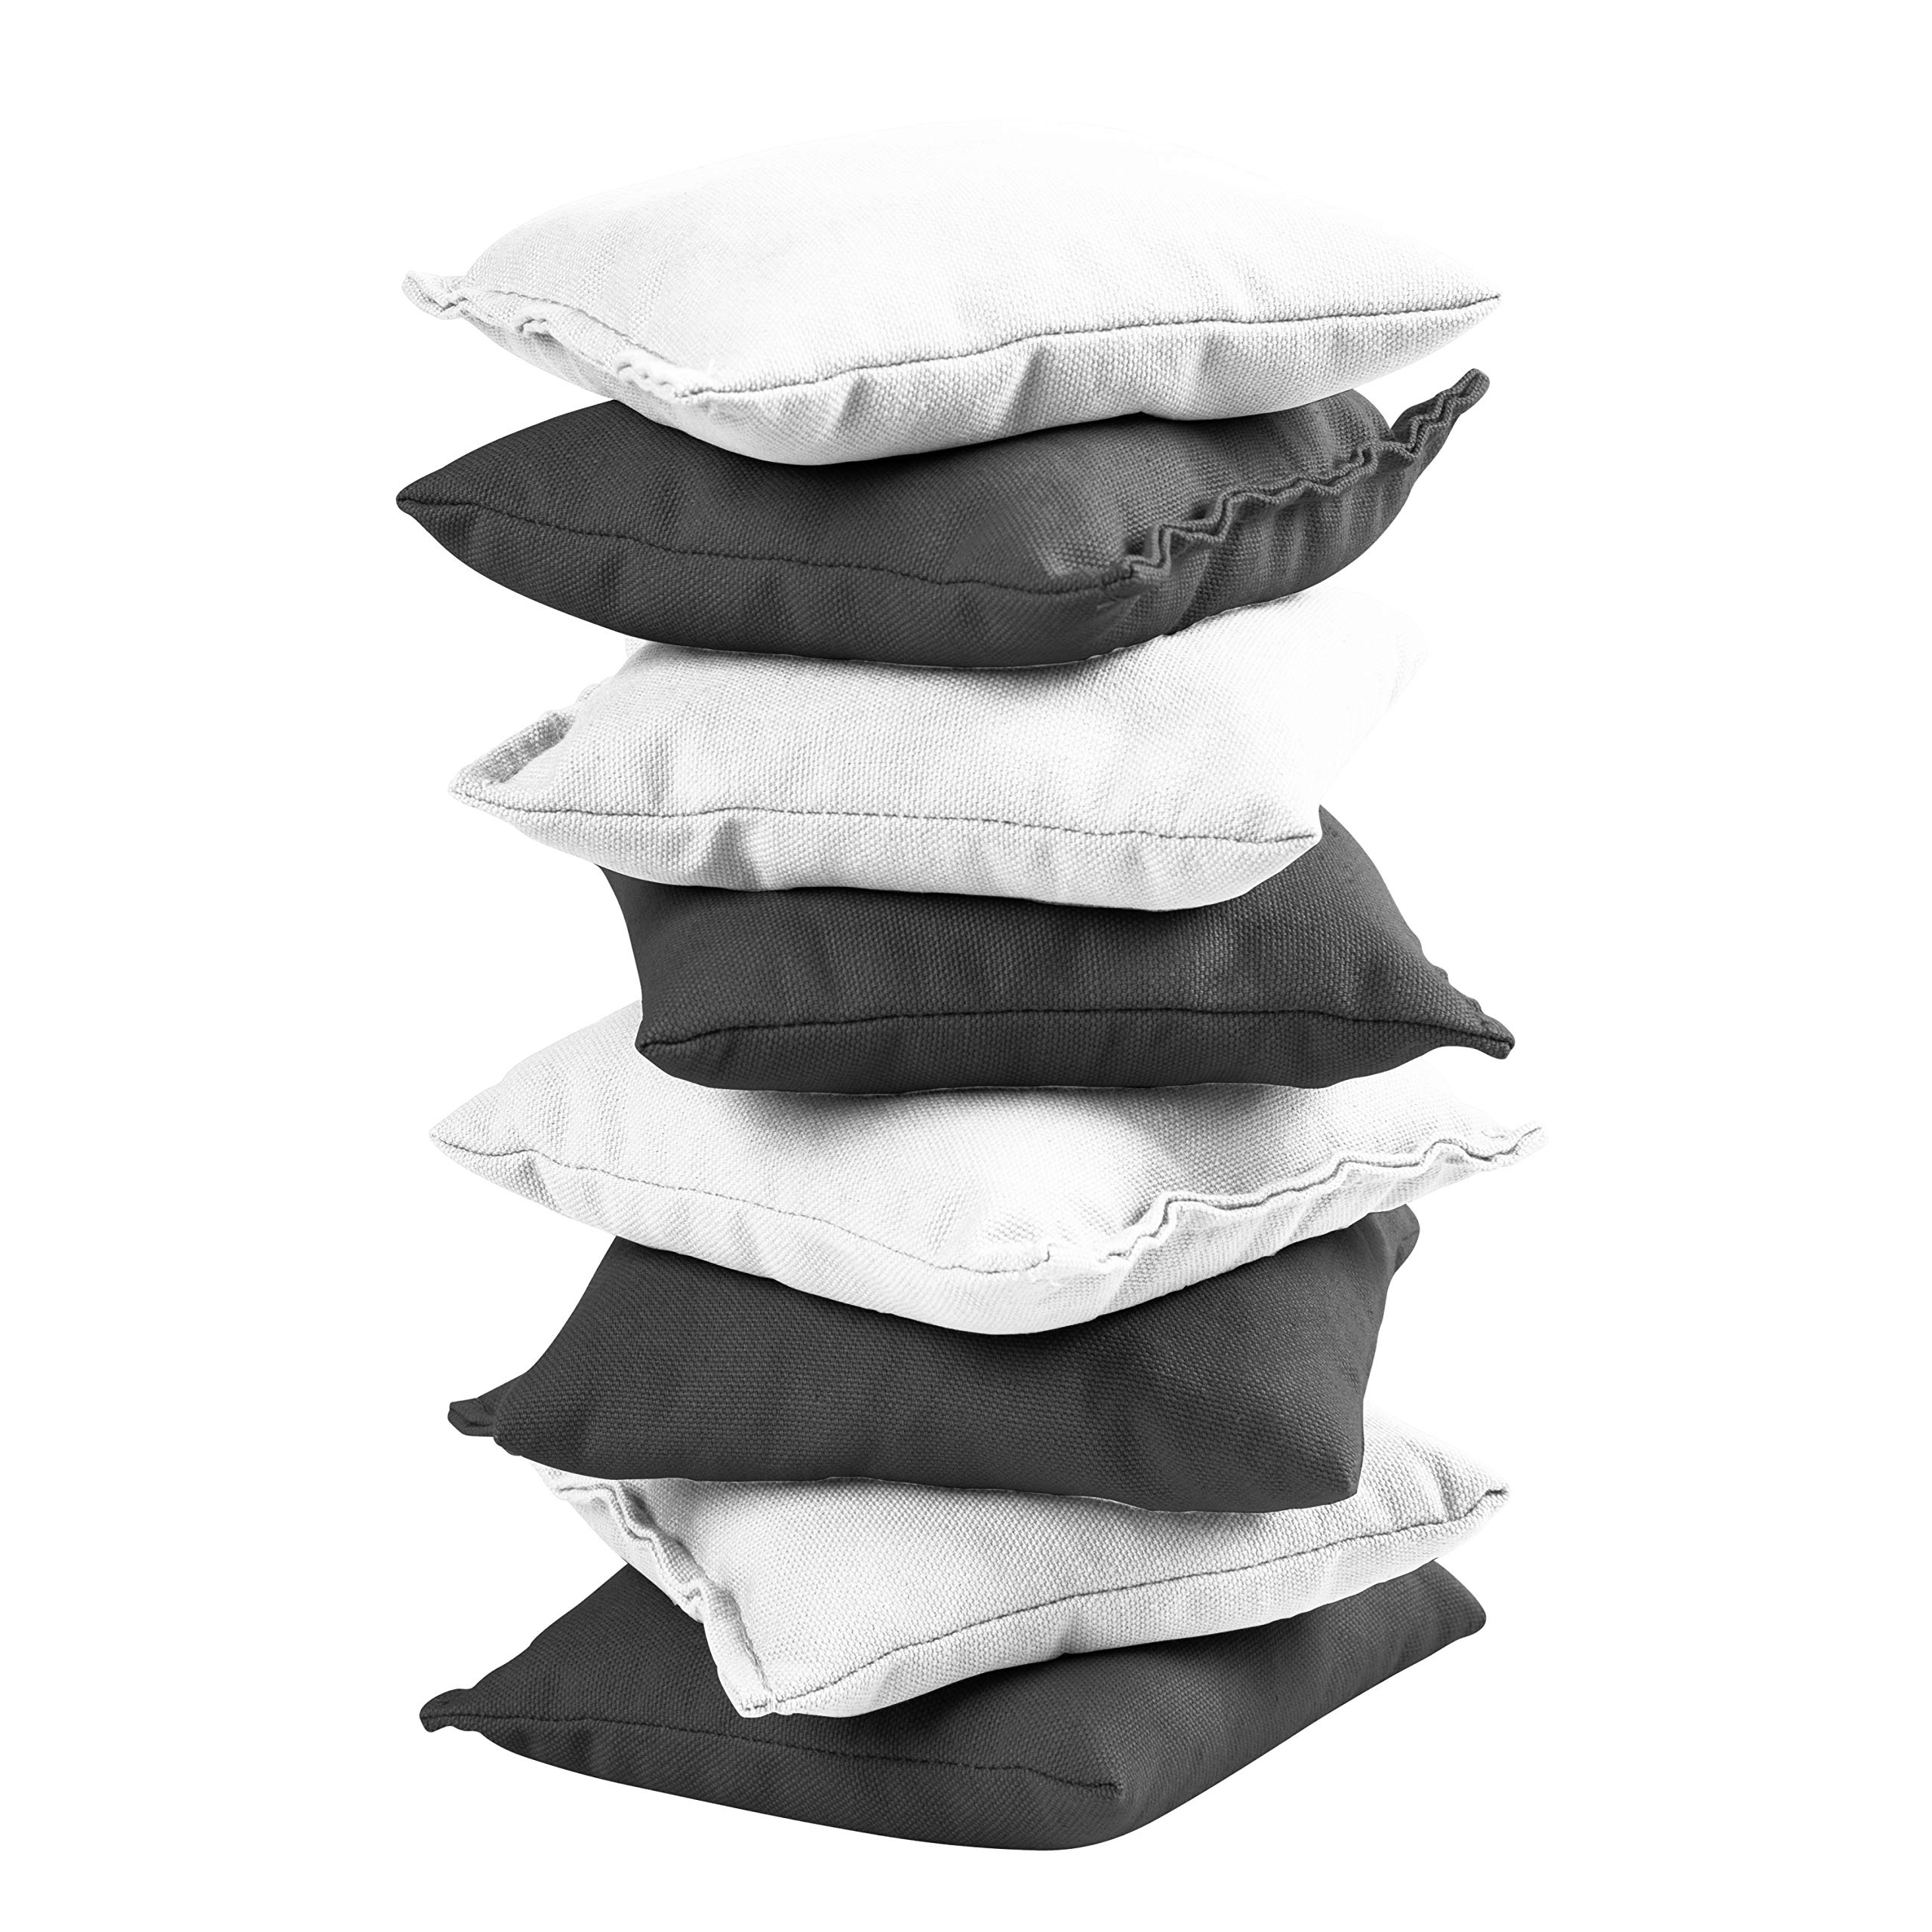 Victory Tailgate 8 Colored Corn Filled Regulation Cornhole Bags with Drawstring Pack (4 Black, 4 White) by Victory Tailgate (Image #2)